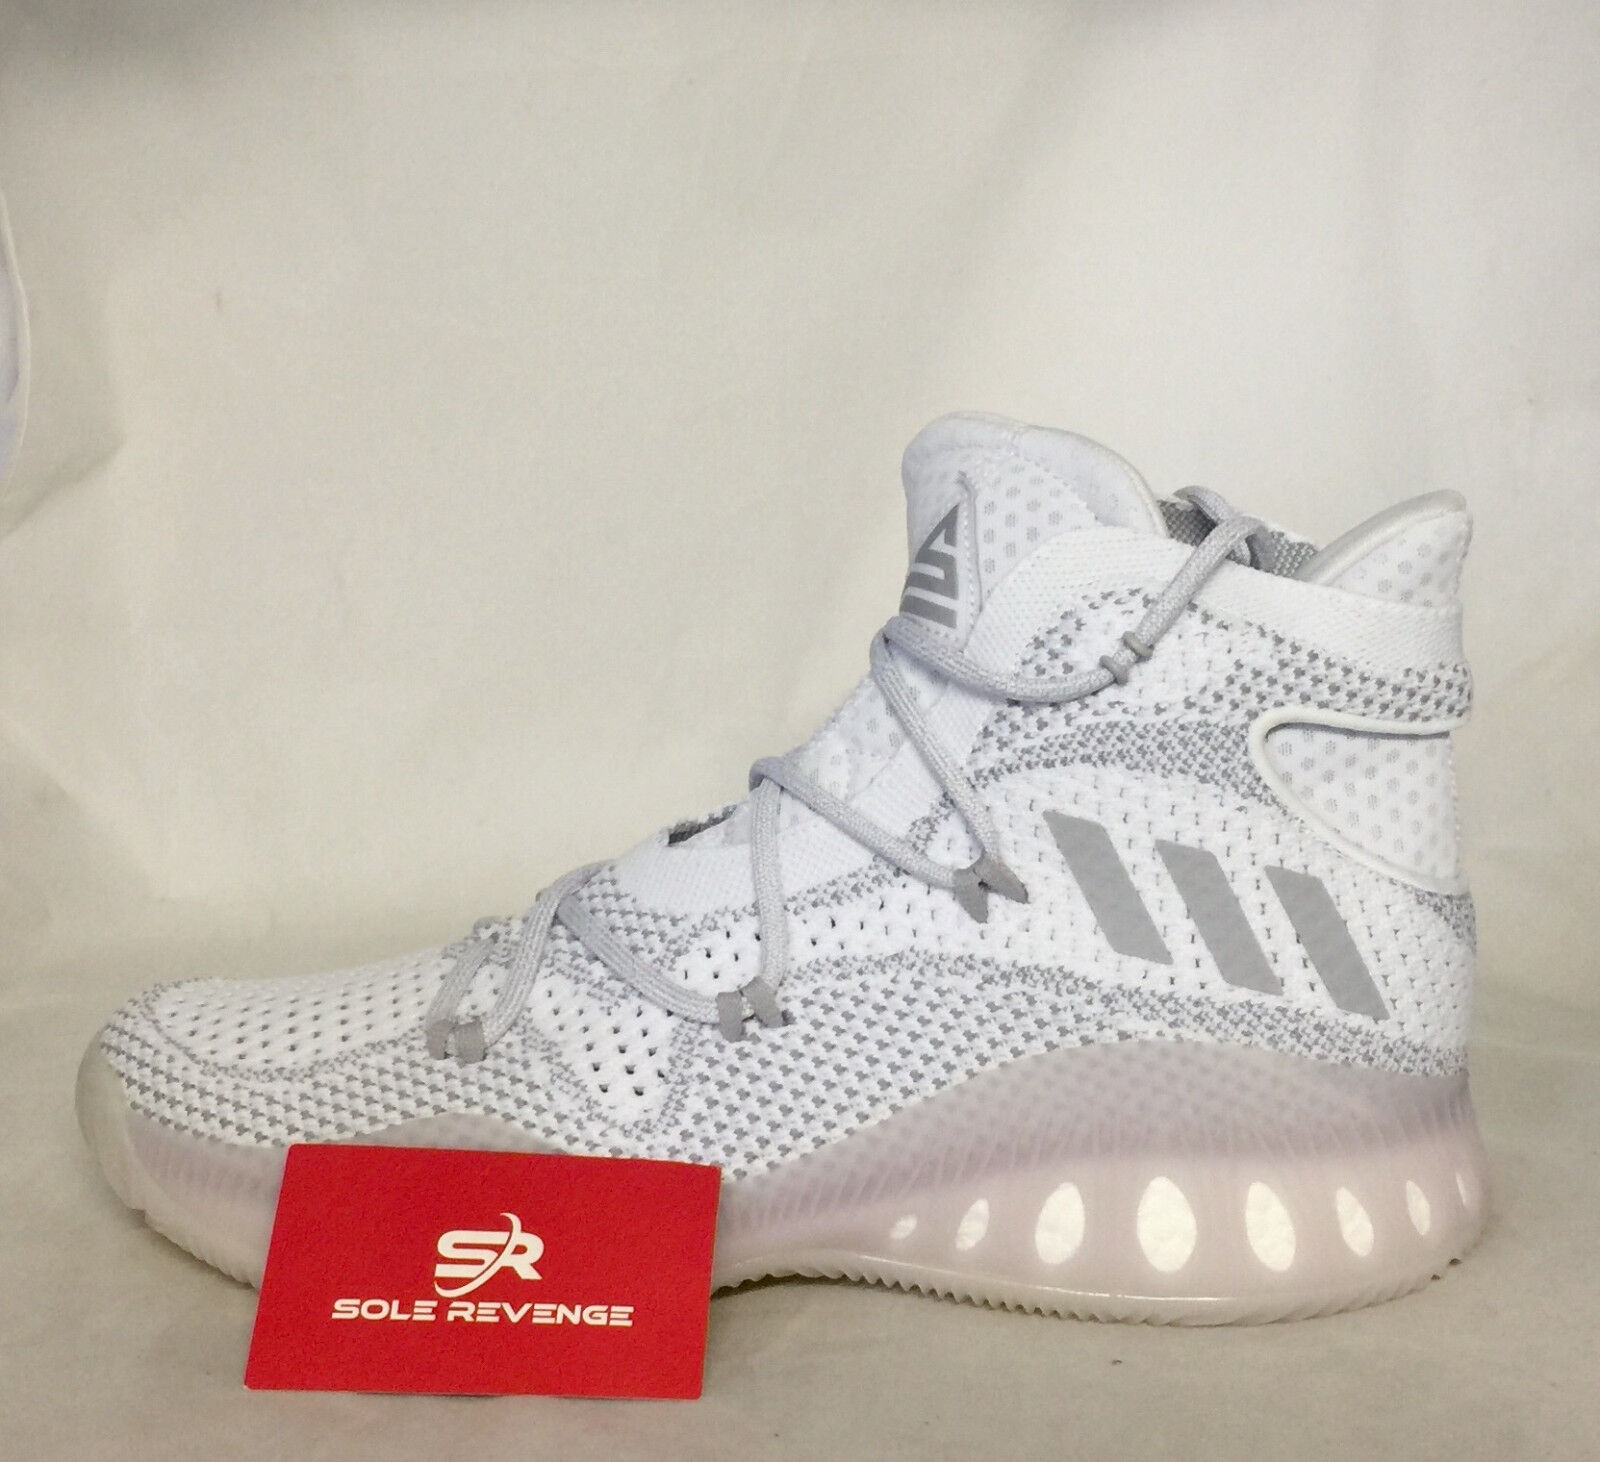 NEW! Swaggy adidas CRAZY EXPLOSIVE PRIMEKNIT Swaggy NEW! P Boost SHOES White Gray BB8897 9a90f8